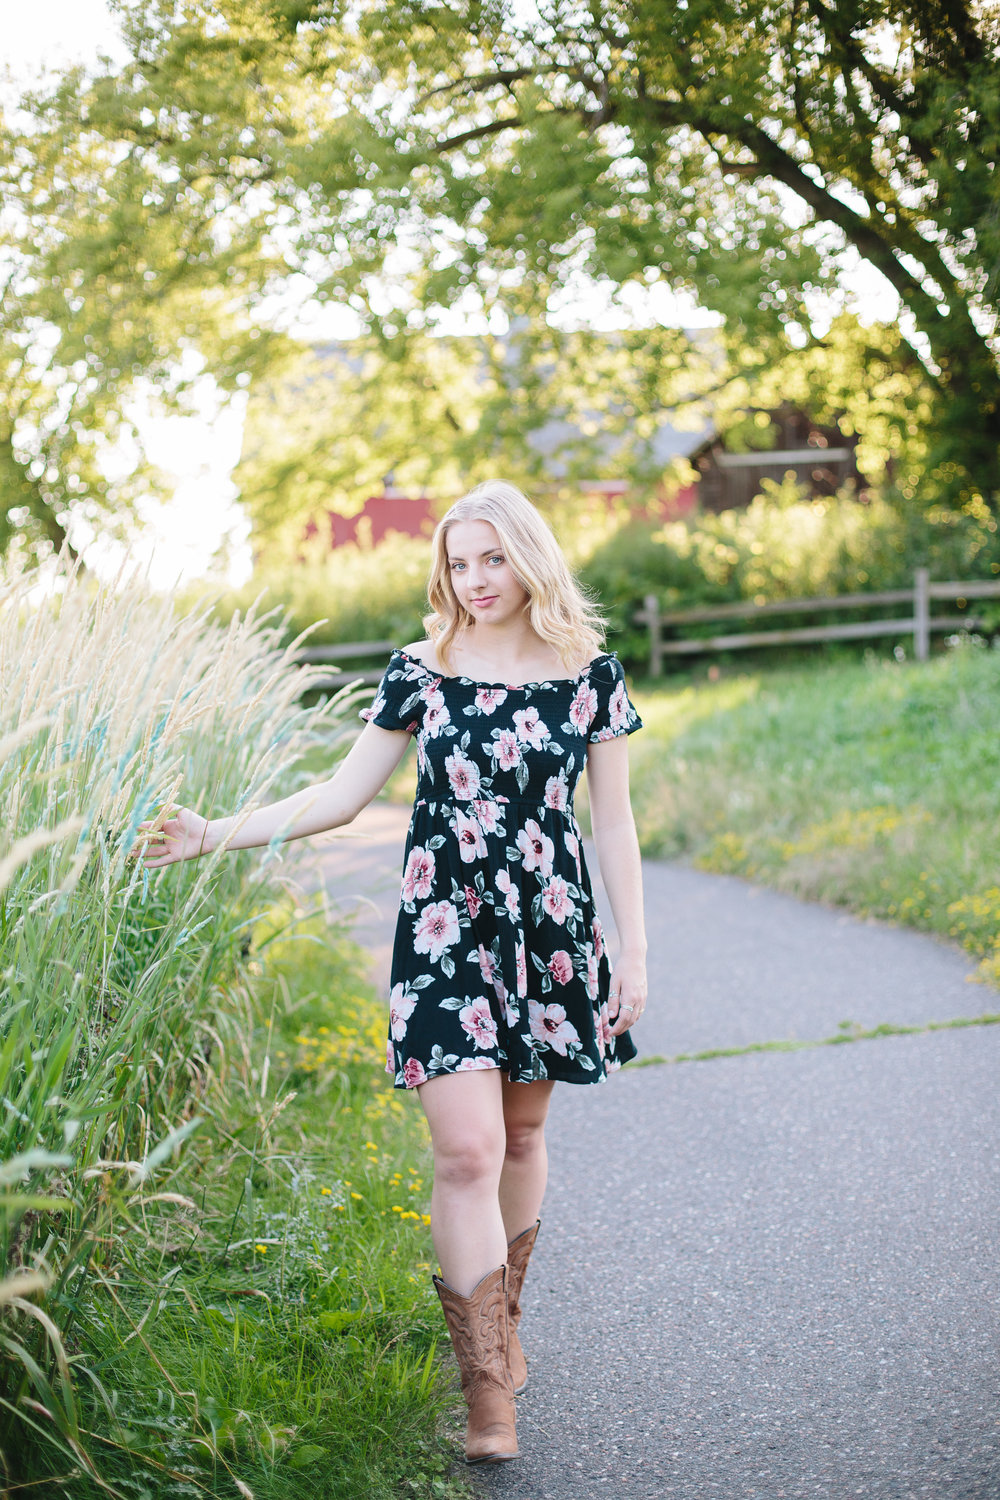 Lauren Baker Photography senior photo girl Chisago high school